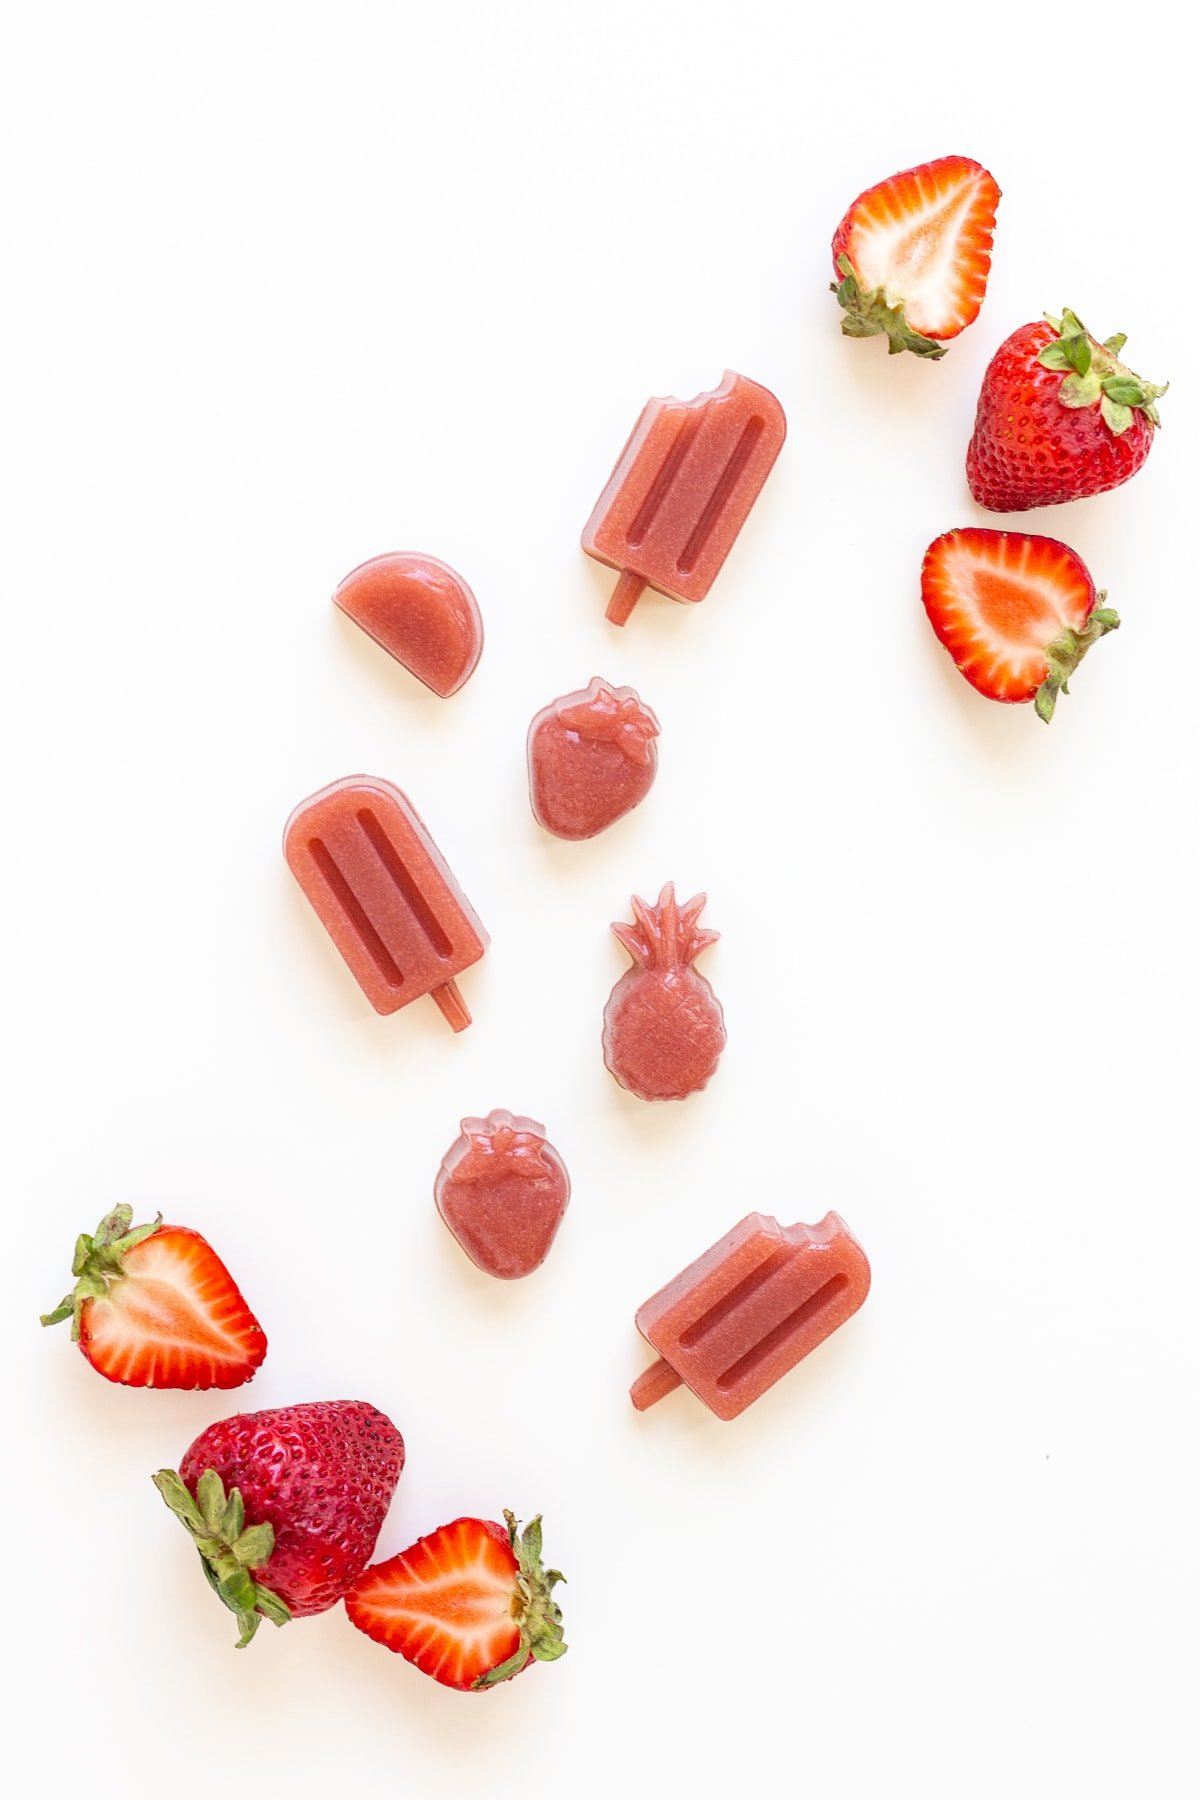 Strawberry gummies and fresh strawberries on a white background.